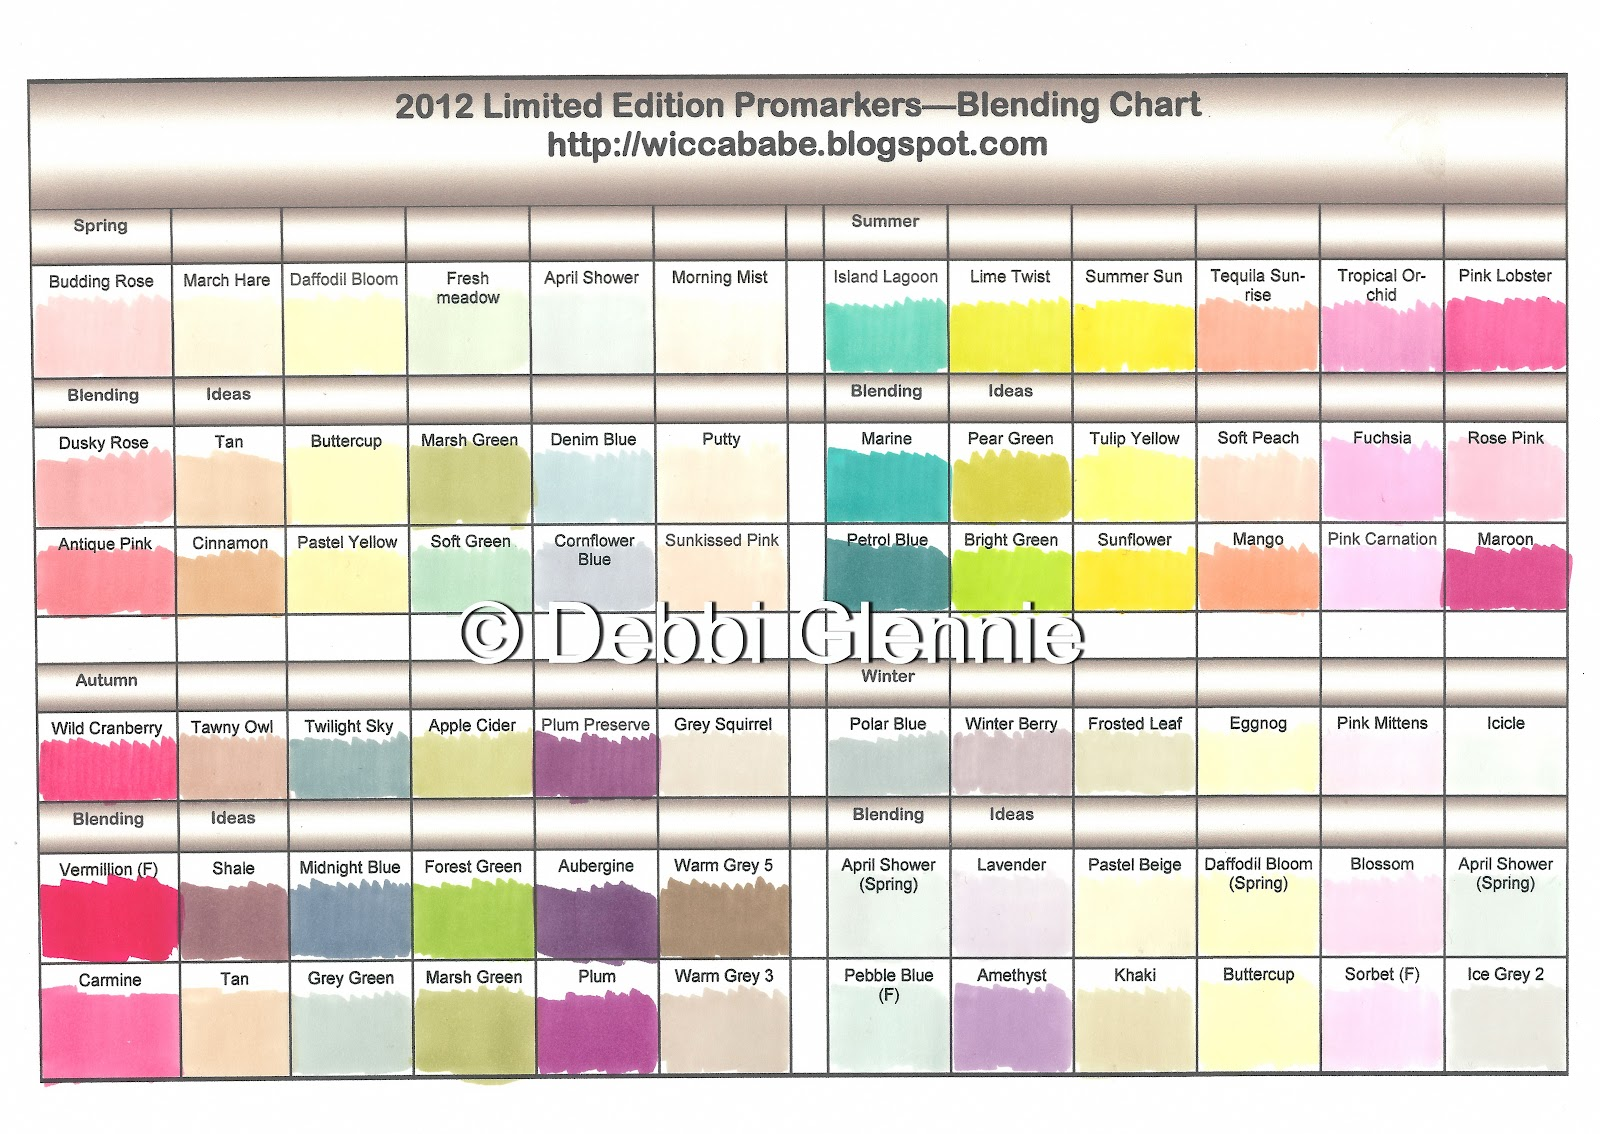 Wiccababes tutorials 2012 limited edition blending chart nvjuhfo Choice Image